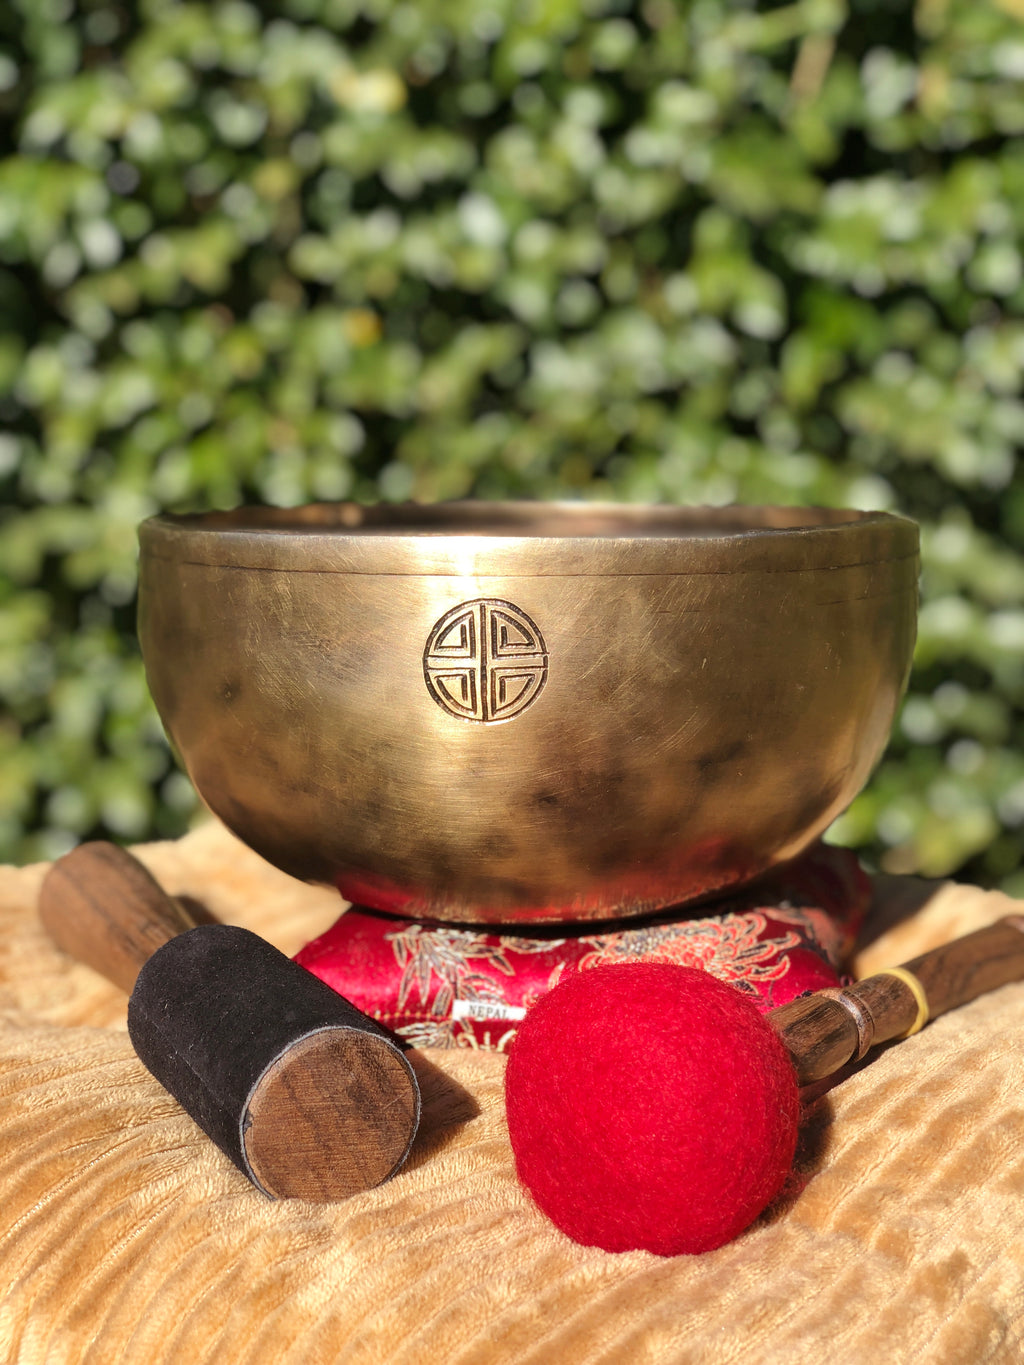 Full Moon Singing Bowl for Chakra Healing and Meditation made by hand in Nepal